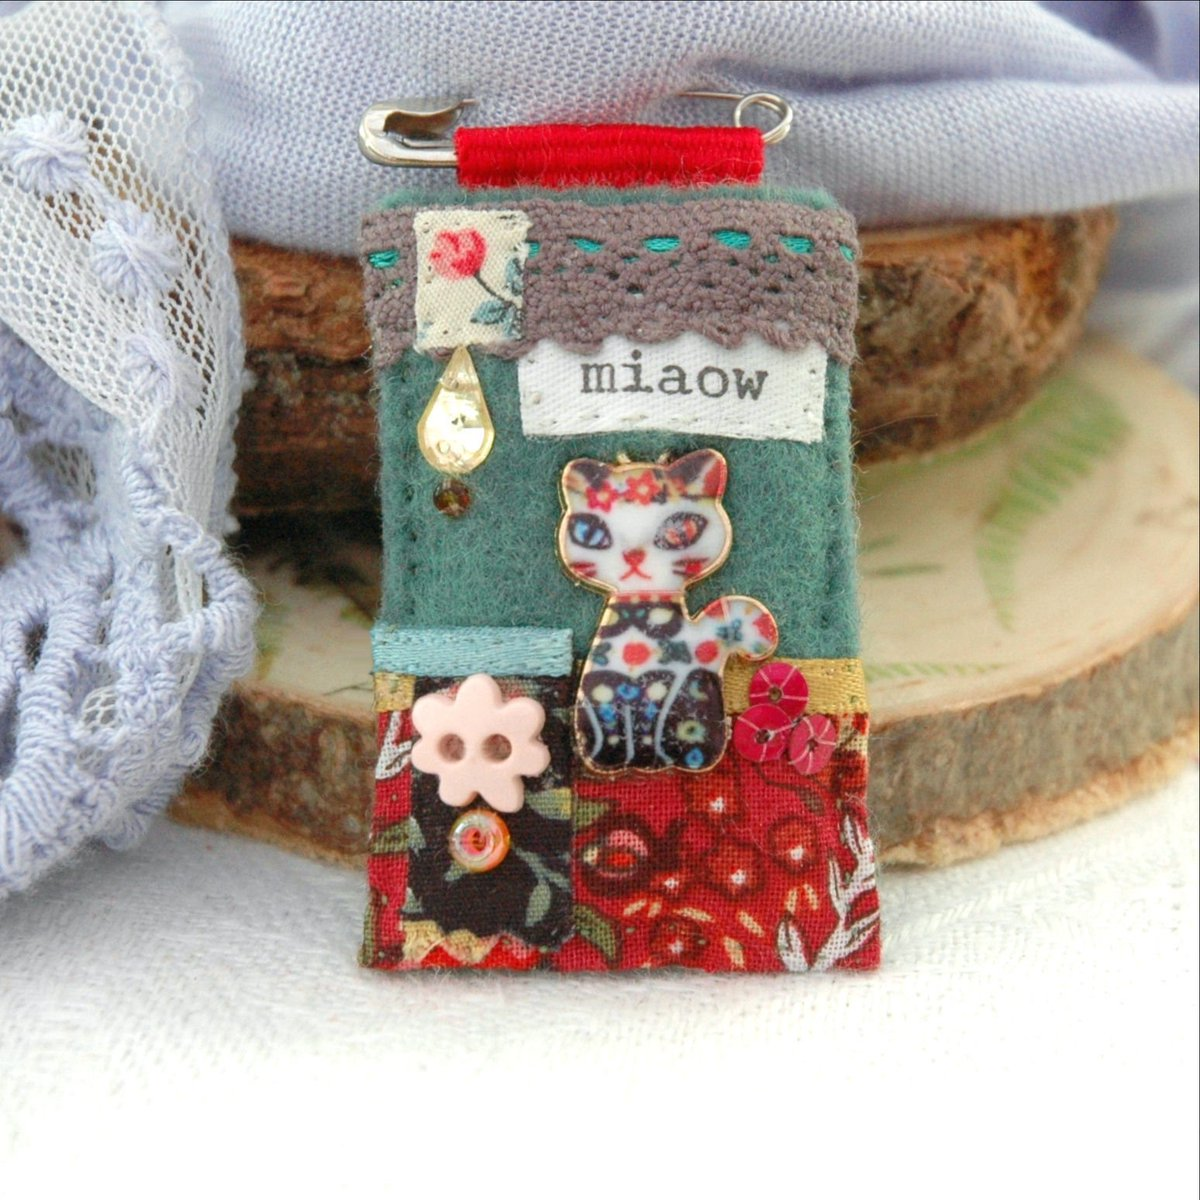 Cat pin brooch - one of a kind and hand sewn by Ellie&#39;s Treasures. Perfect #jewellery #gift for #catlovers.   https:// etsy.me/2Wv7ArX  &nbsp;    #hhlunch #etsyjewelry <br>http://pic.twitter.com/EmpGk5xg9d